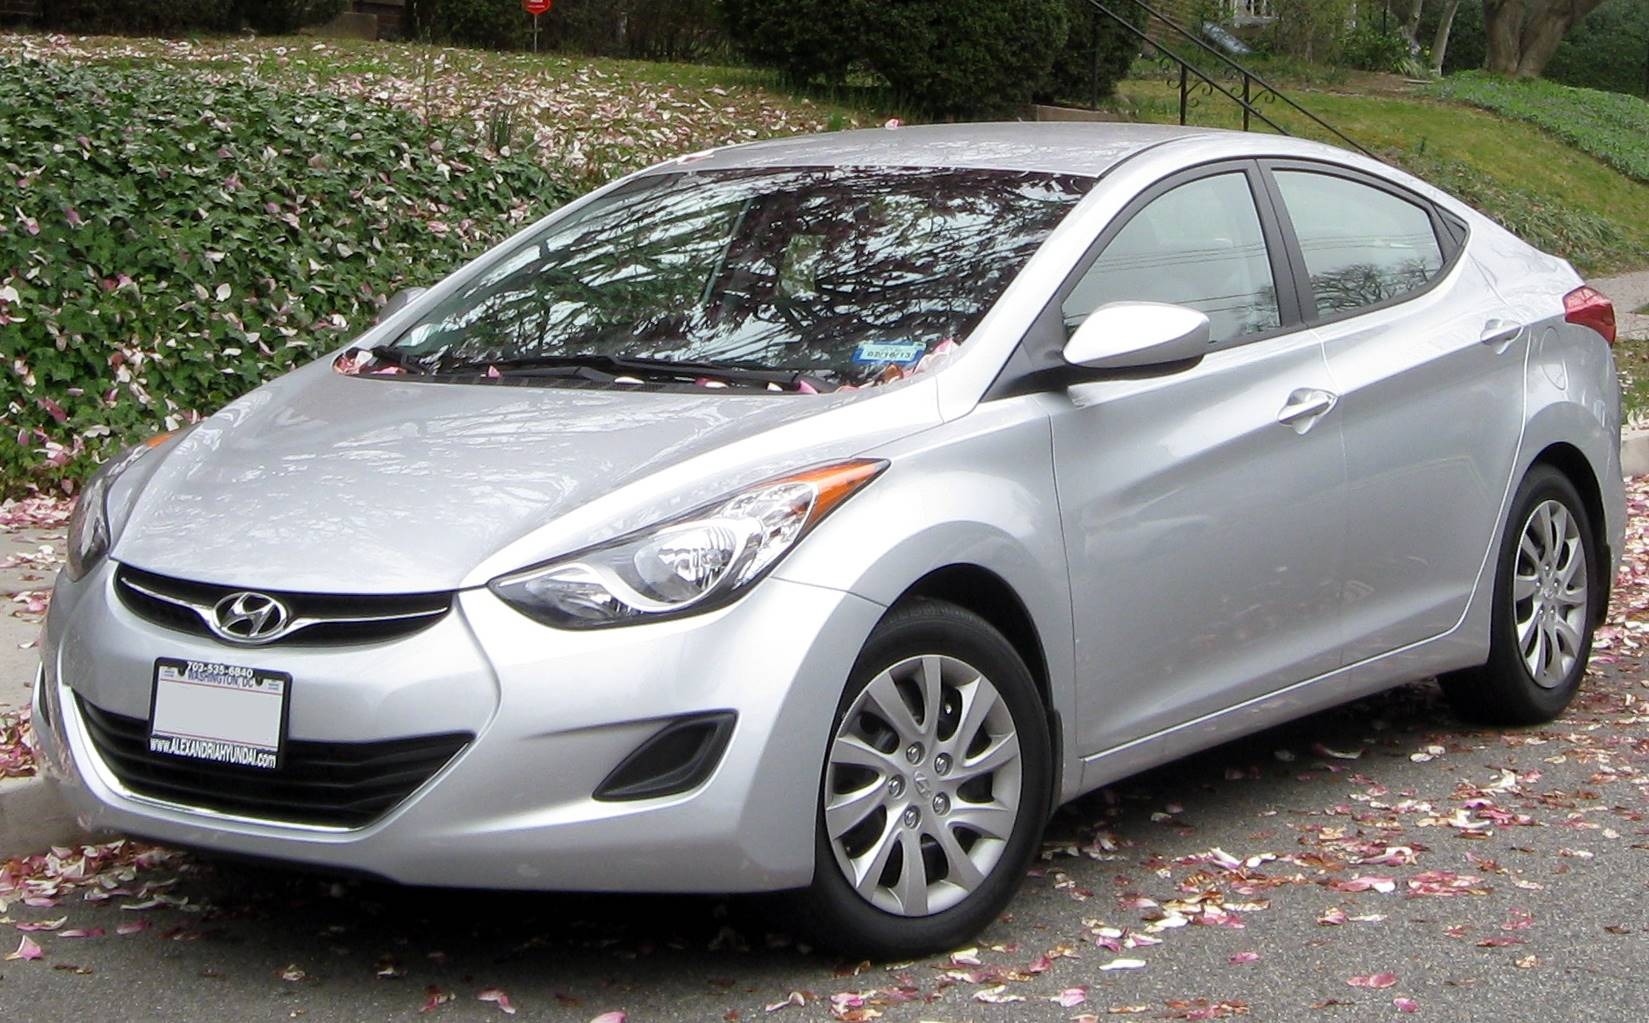 Hyundai Accent Gas Mileage >> 2012 Hyundai Elantra GLS w/6-Speed Automatic 4dr Sedan 6